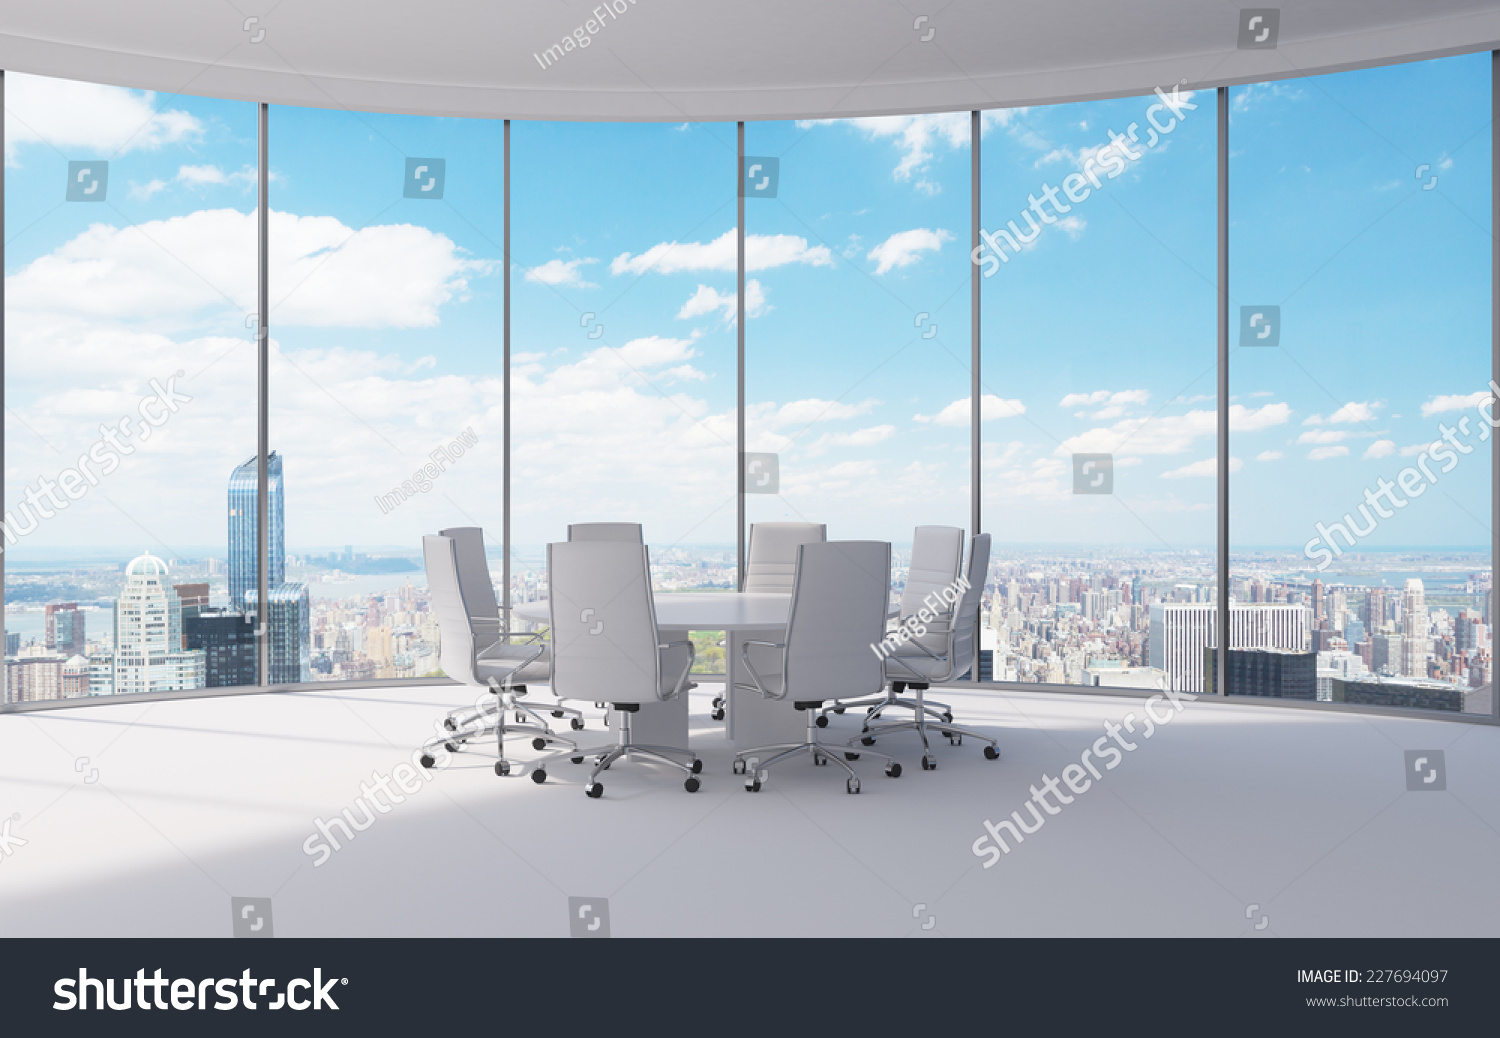 Conference Room Modern Office Windows City Stock Photo 227694097 ...